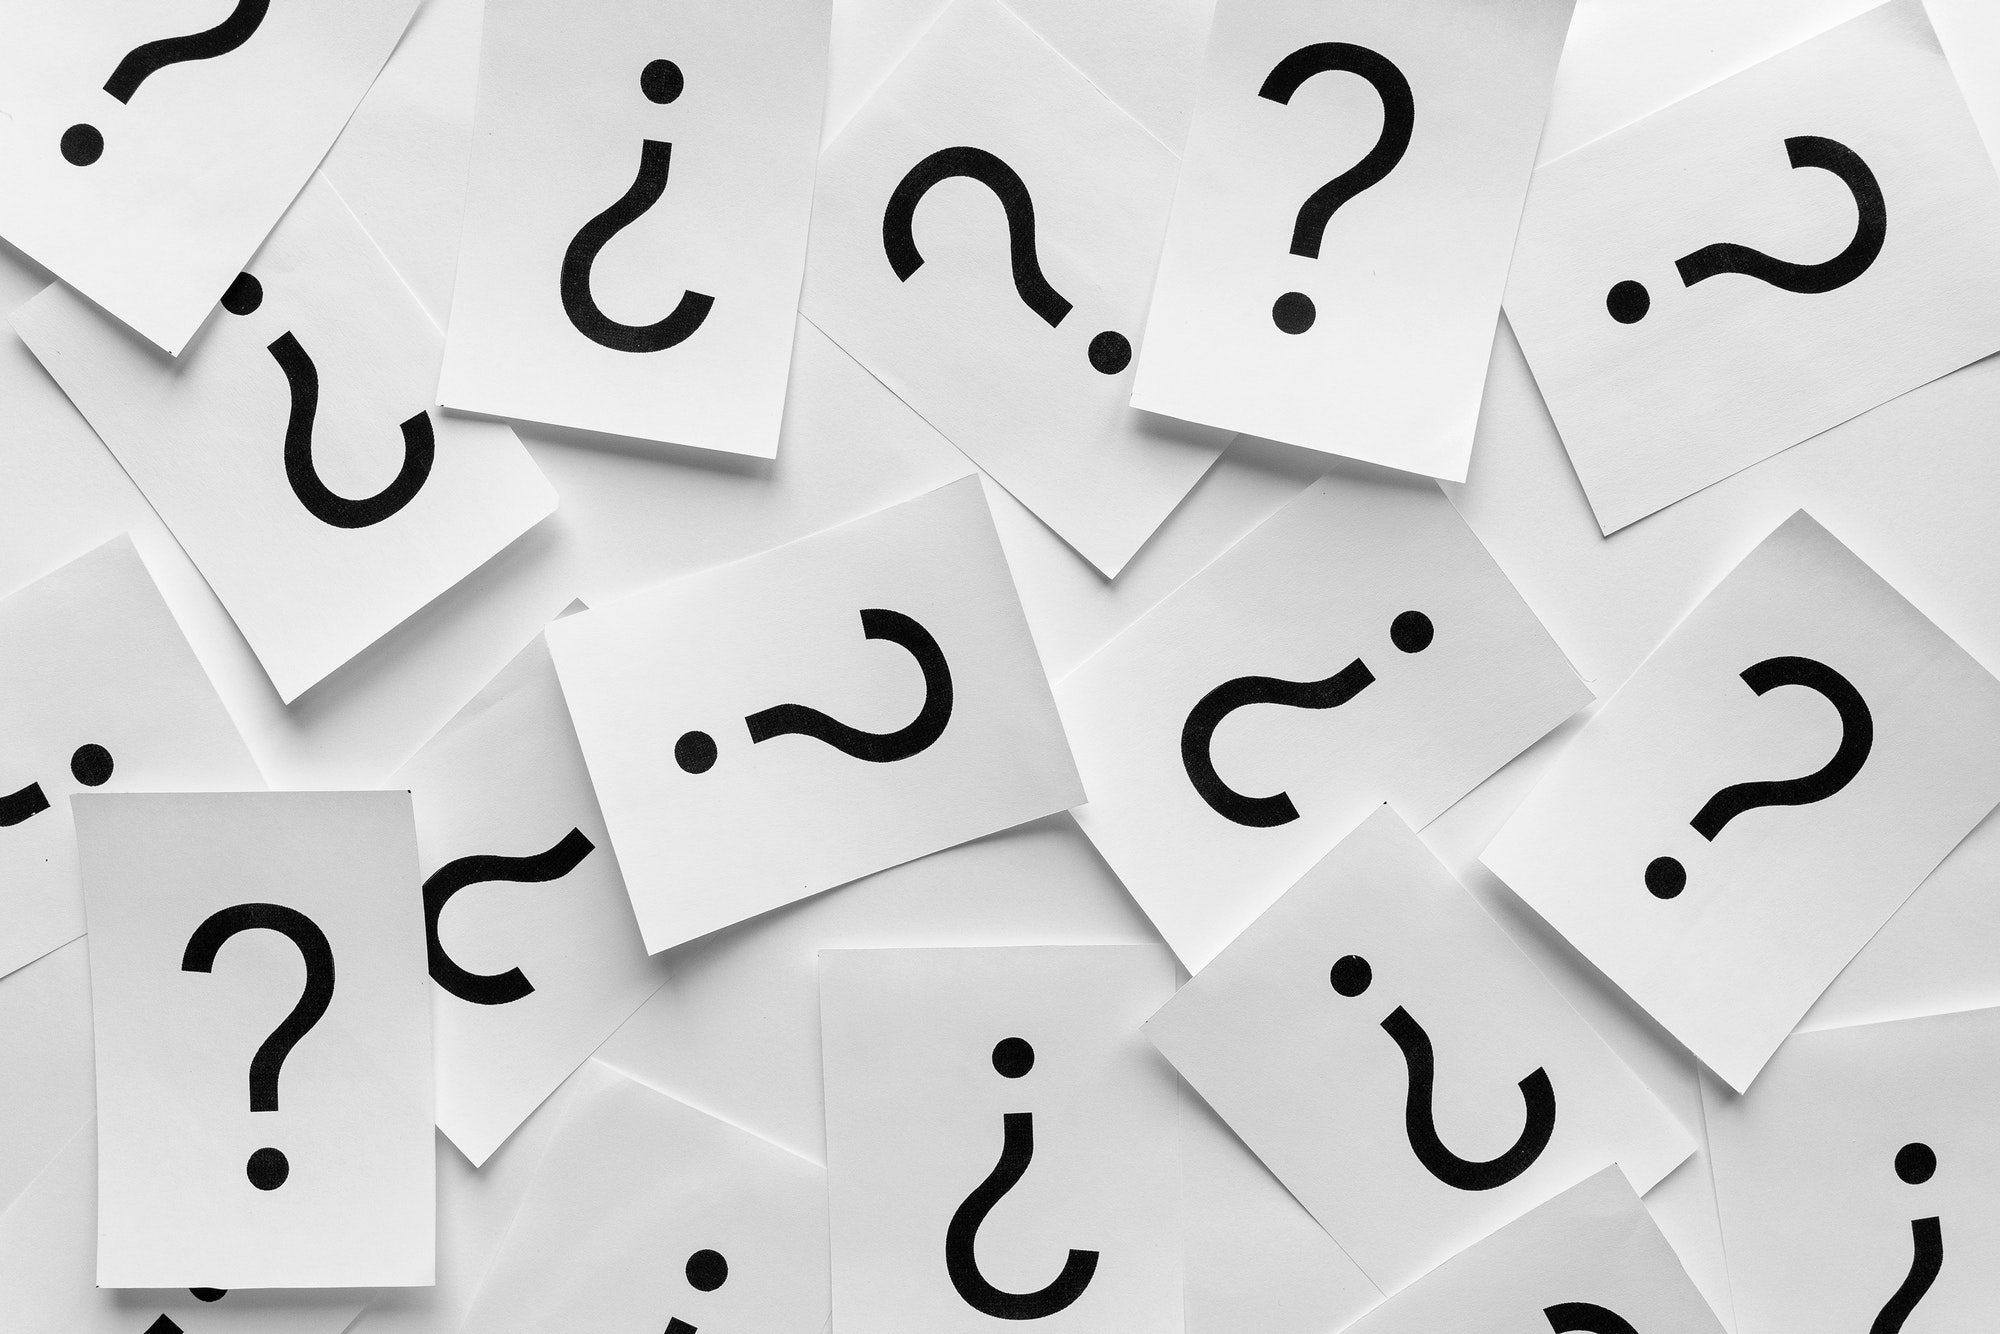 Background texture of printed question marks